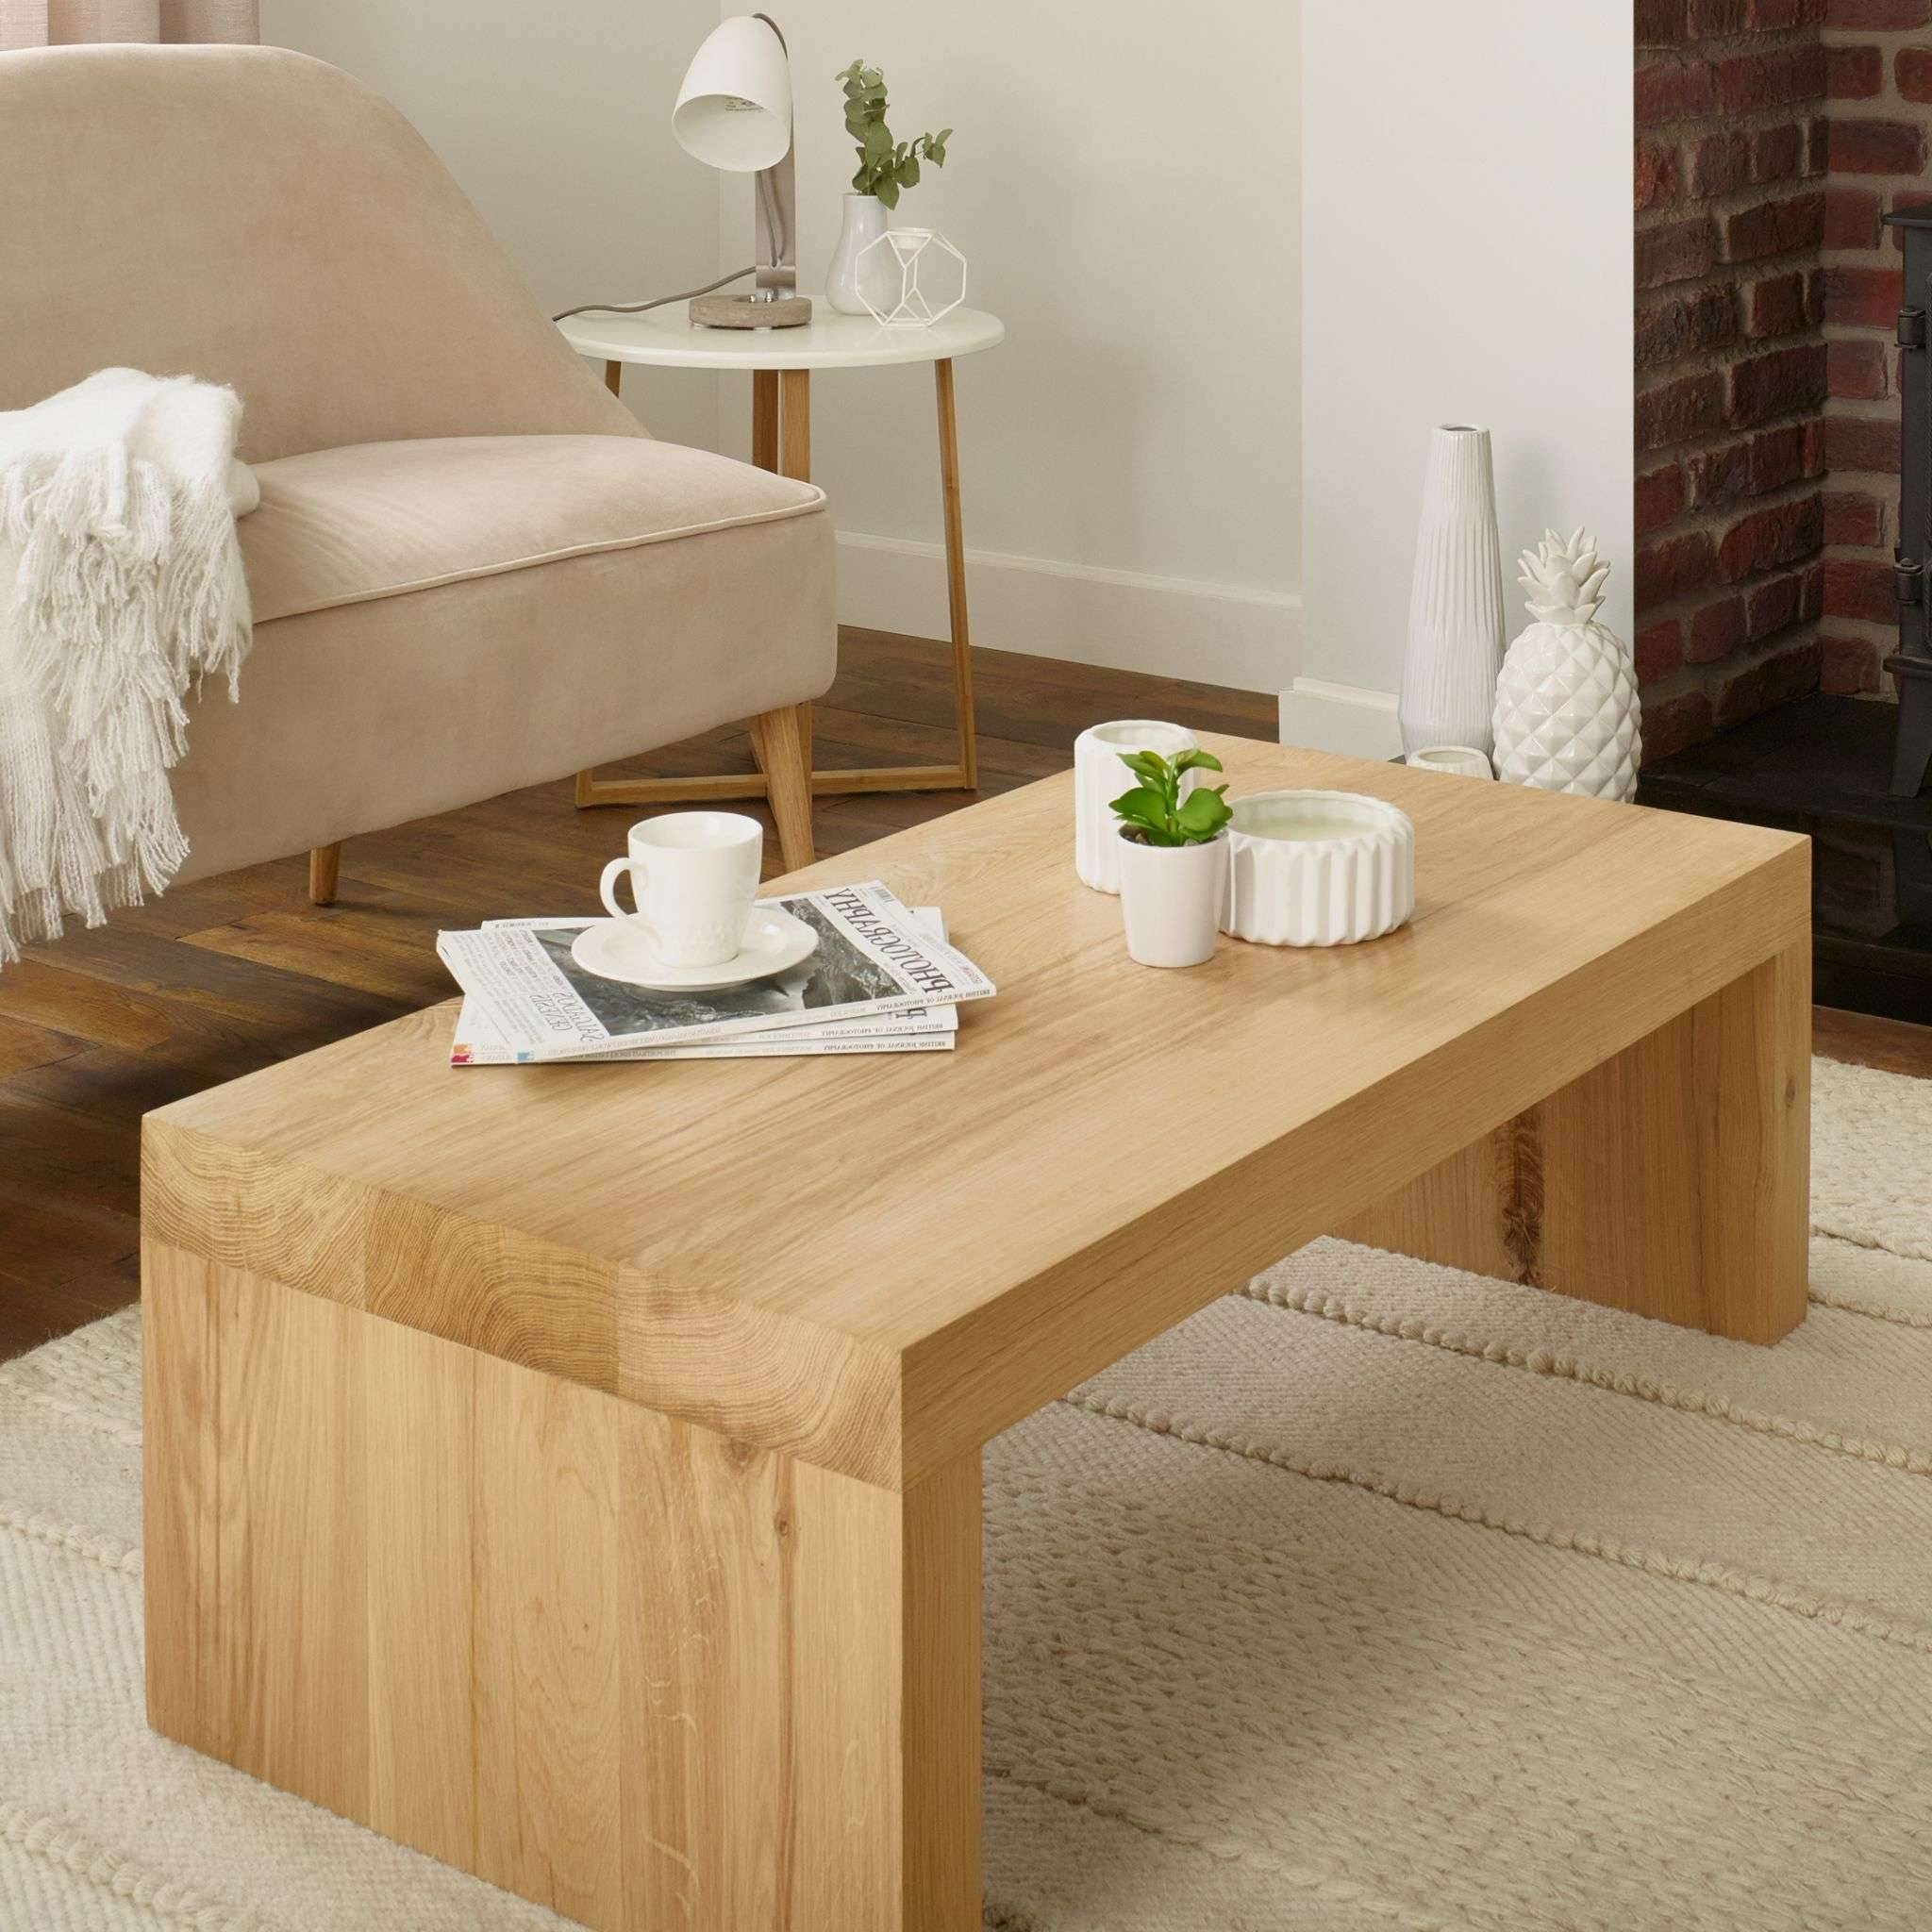 Oak Coffee Table Canterbury Solid French Rustic Beam Intended For Current Solid Oak Beam Coffee Table (View 9 of 20)